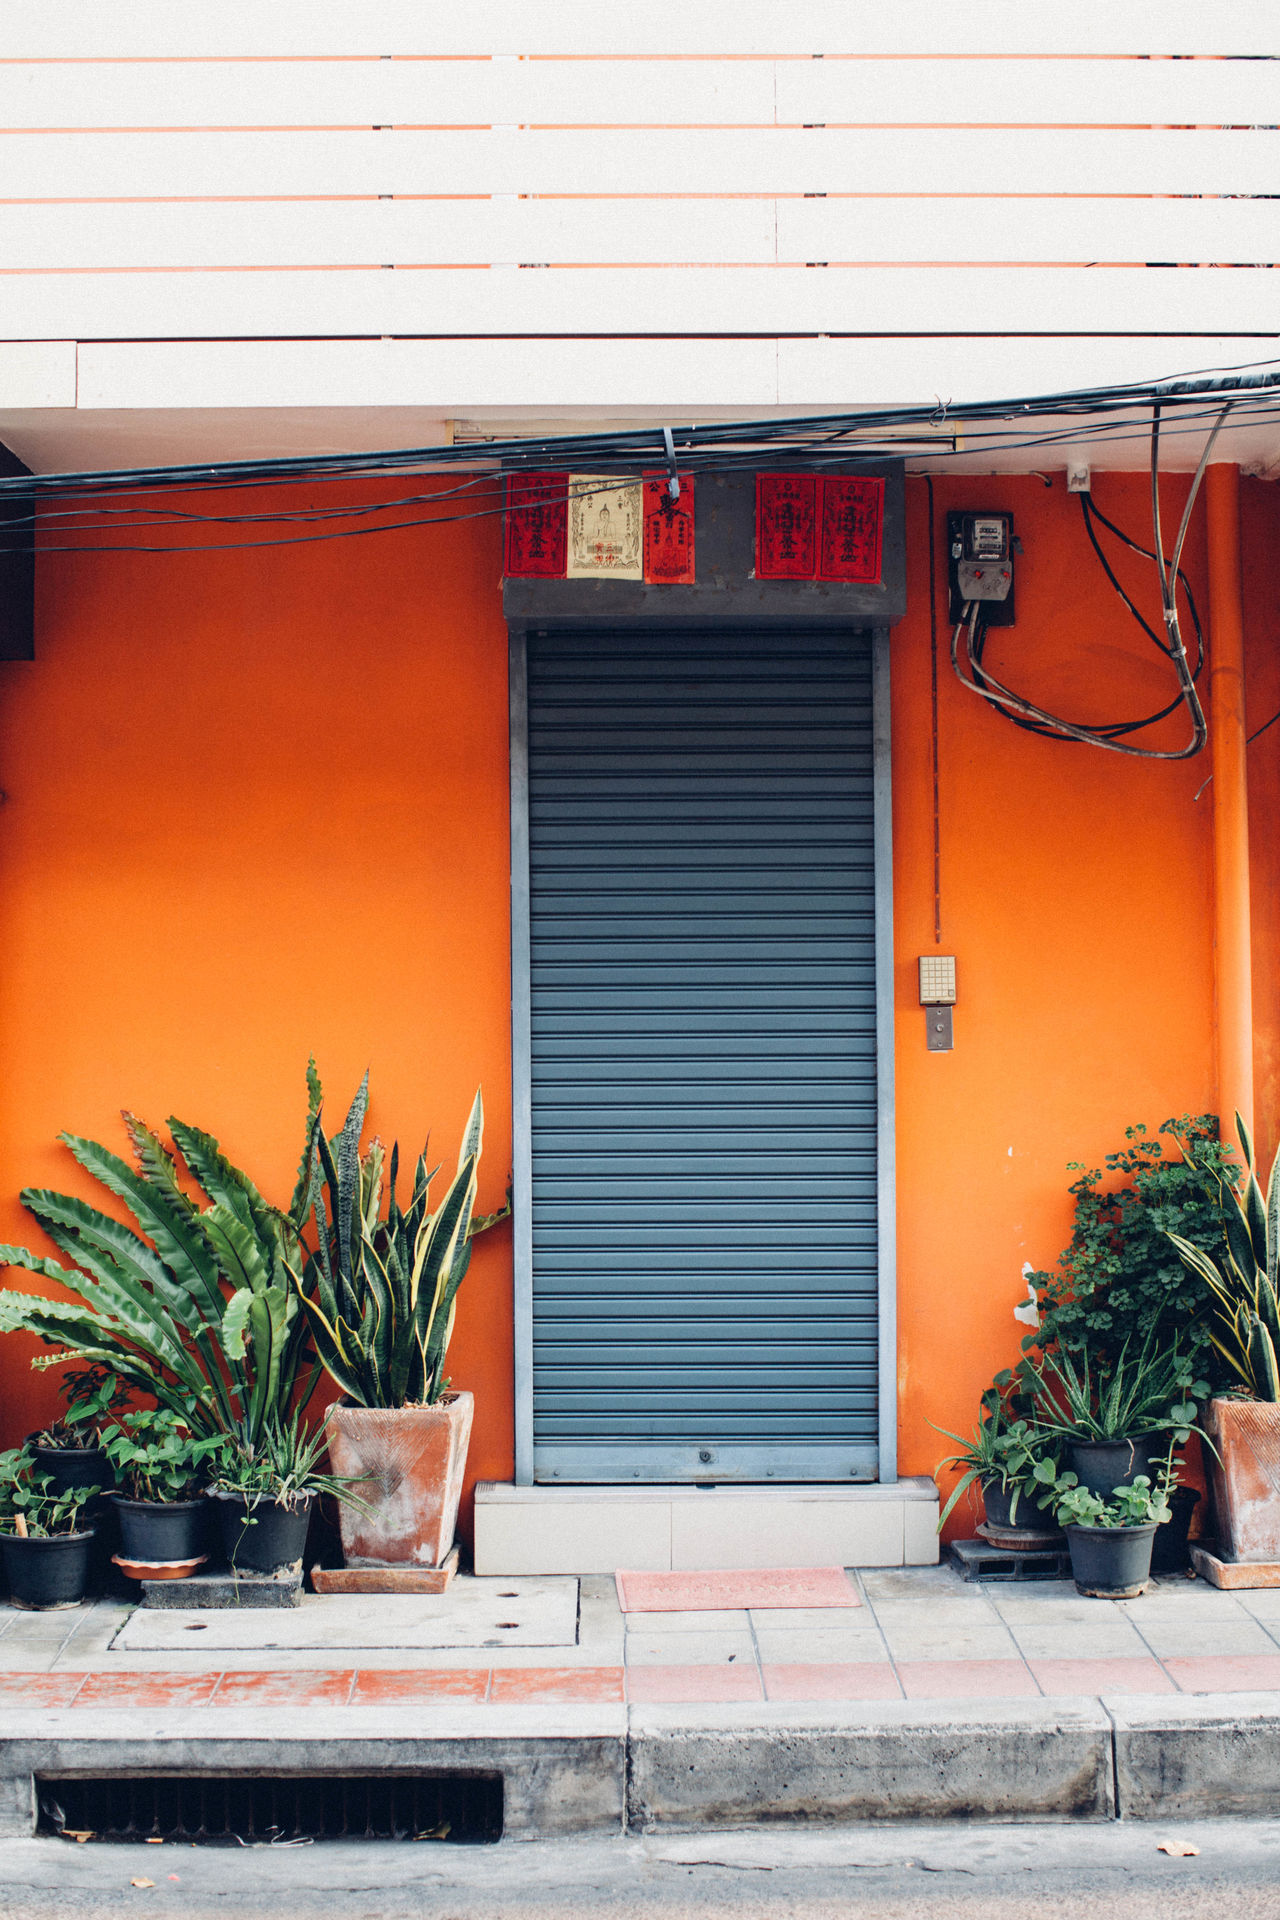 Architecture Bright Bright Color Bright Colors Building Exterior Built Structure Day Door No People Orange Outdoors Plant Potted Plant Street Street Photography Streetphotography